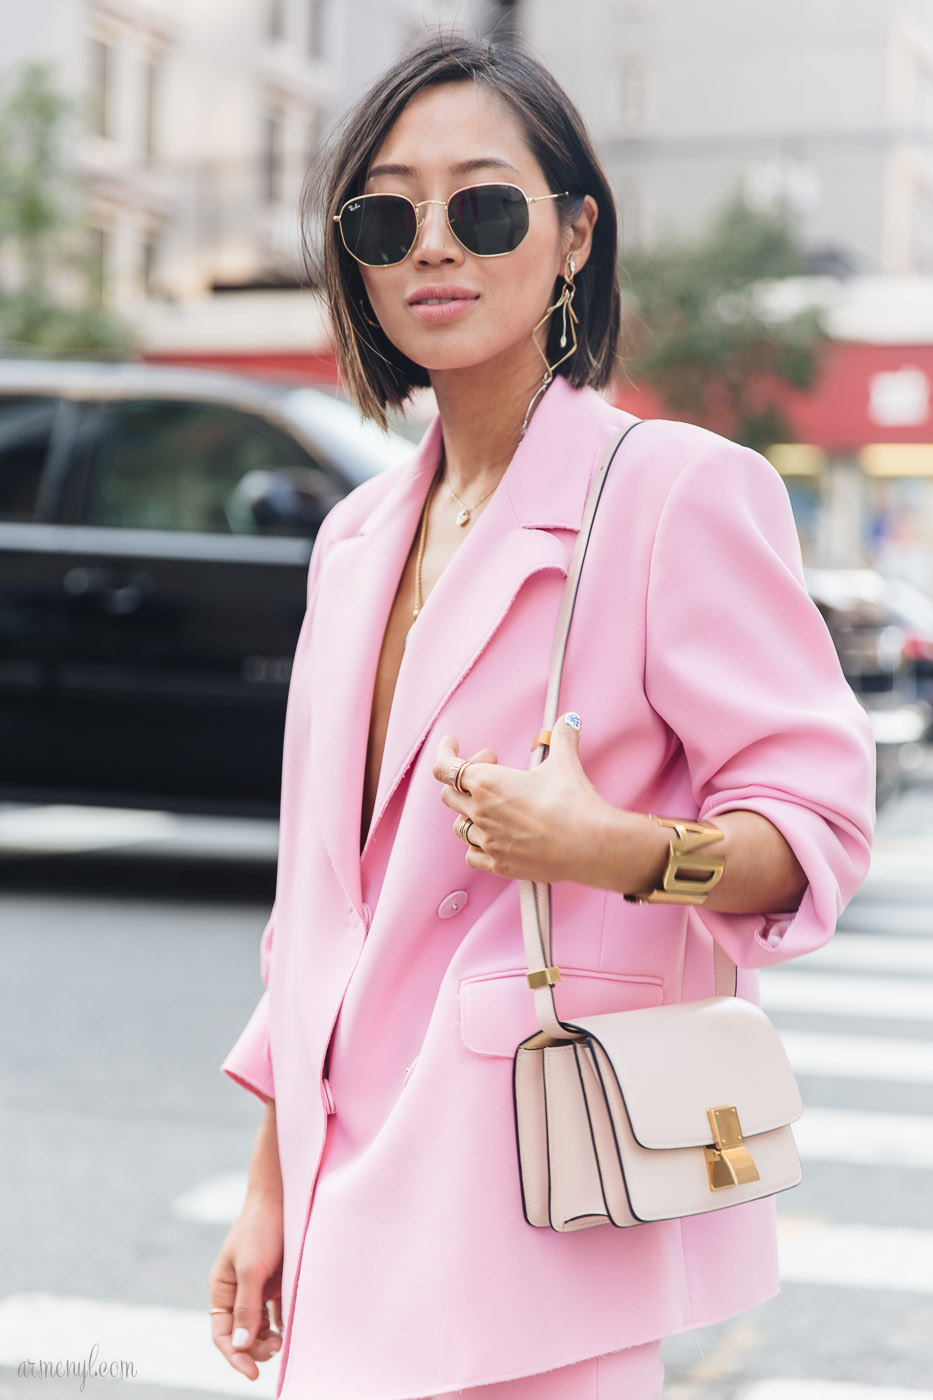 The best pink street style looks at new york fashion week Style me pink fashion show